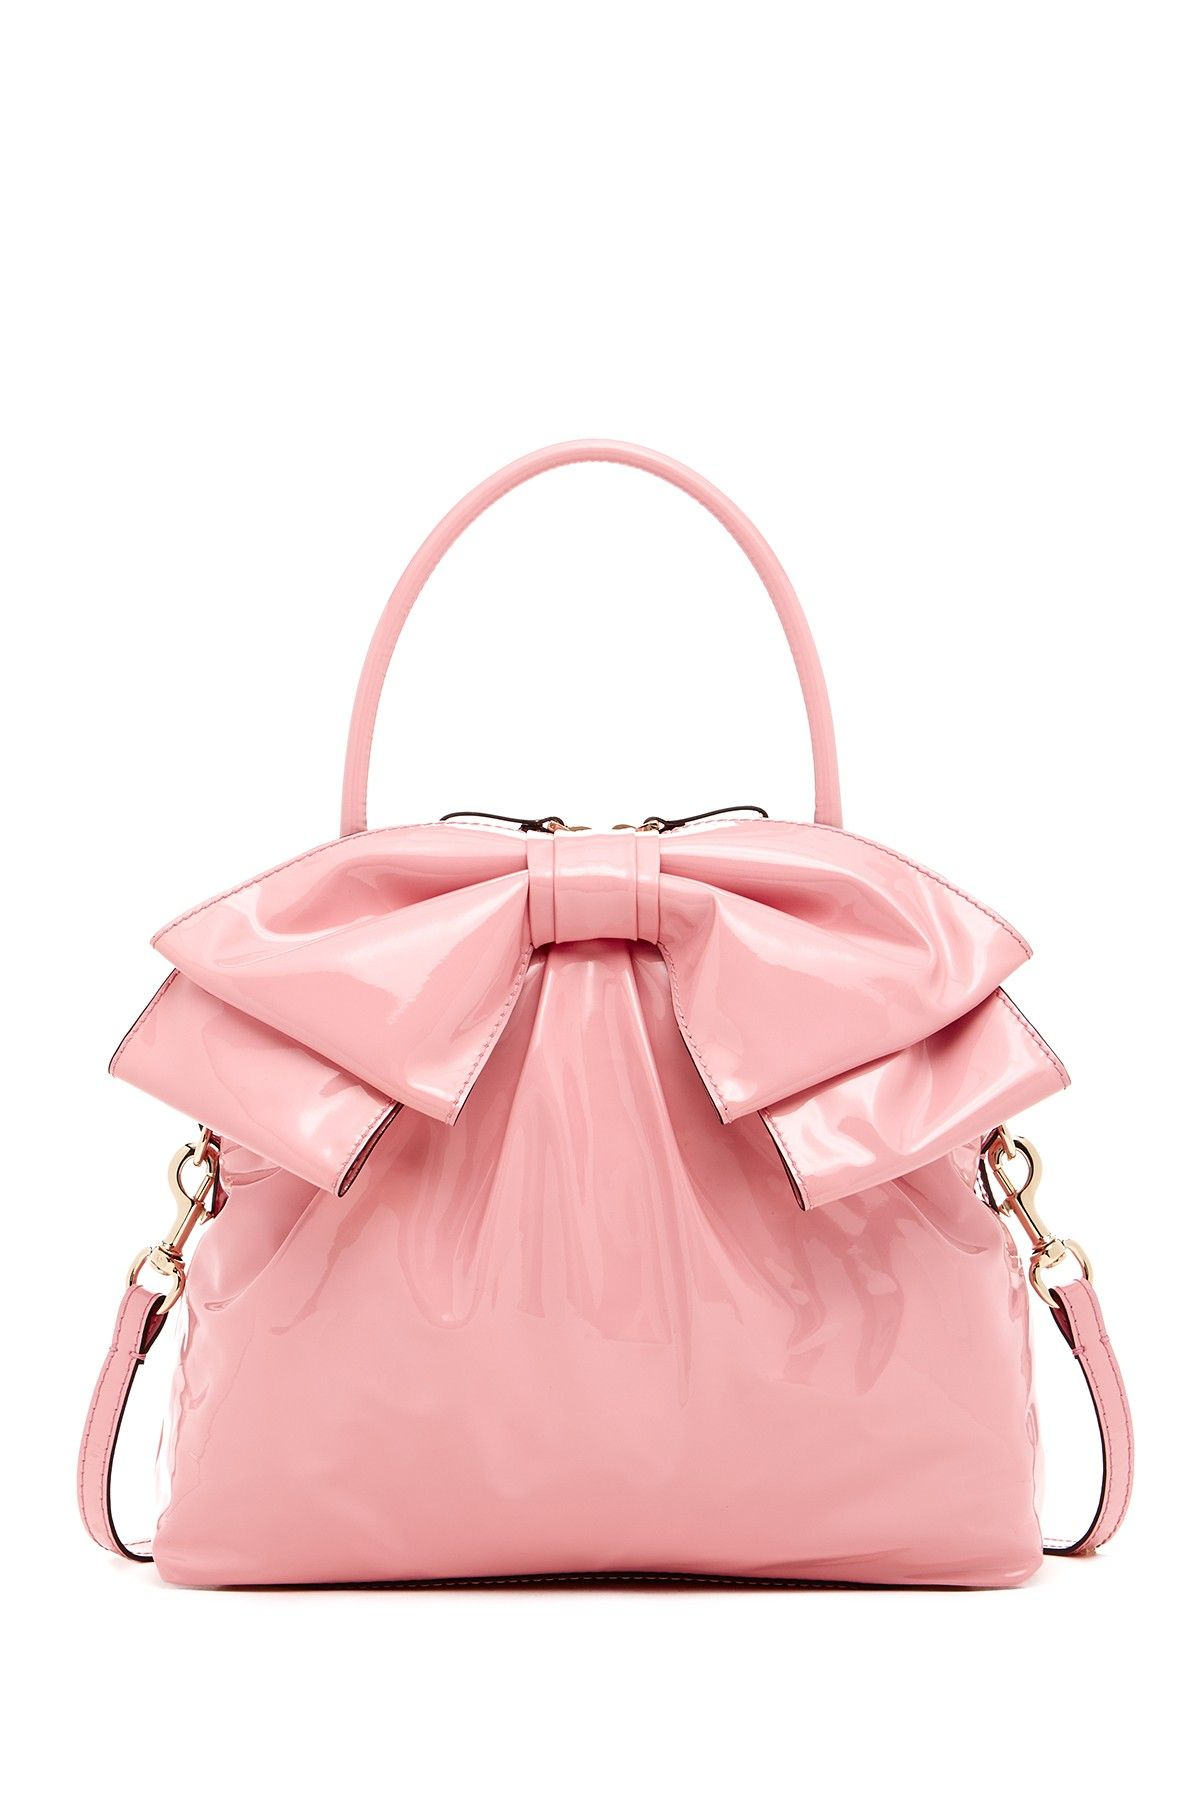 Valentino Double Handle Bow Dome Bag....it's Bowtiful ...